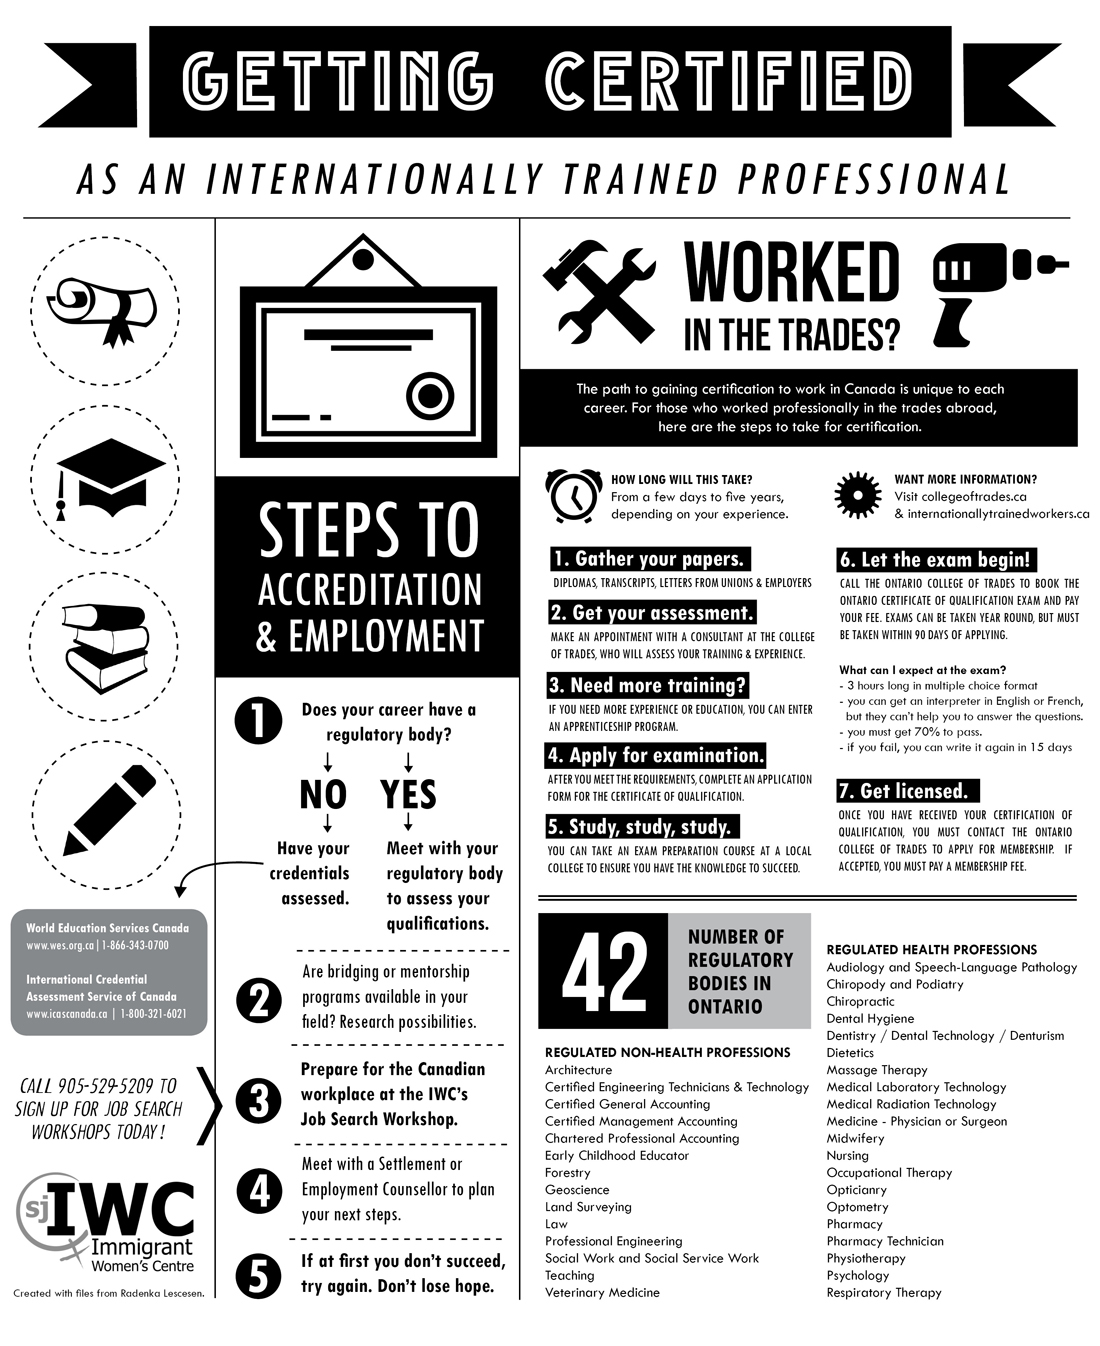 Getting Certified as an Internationally Trained Professionals